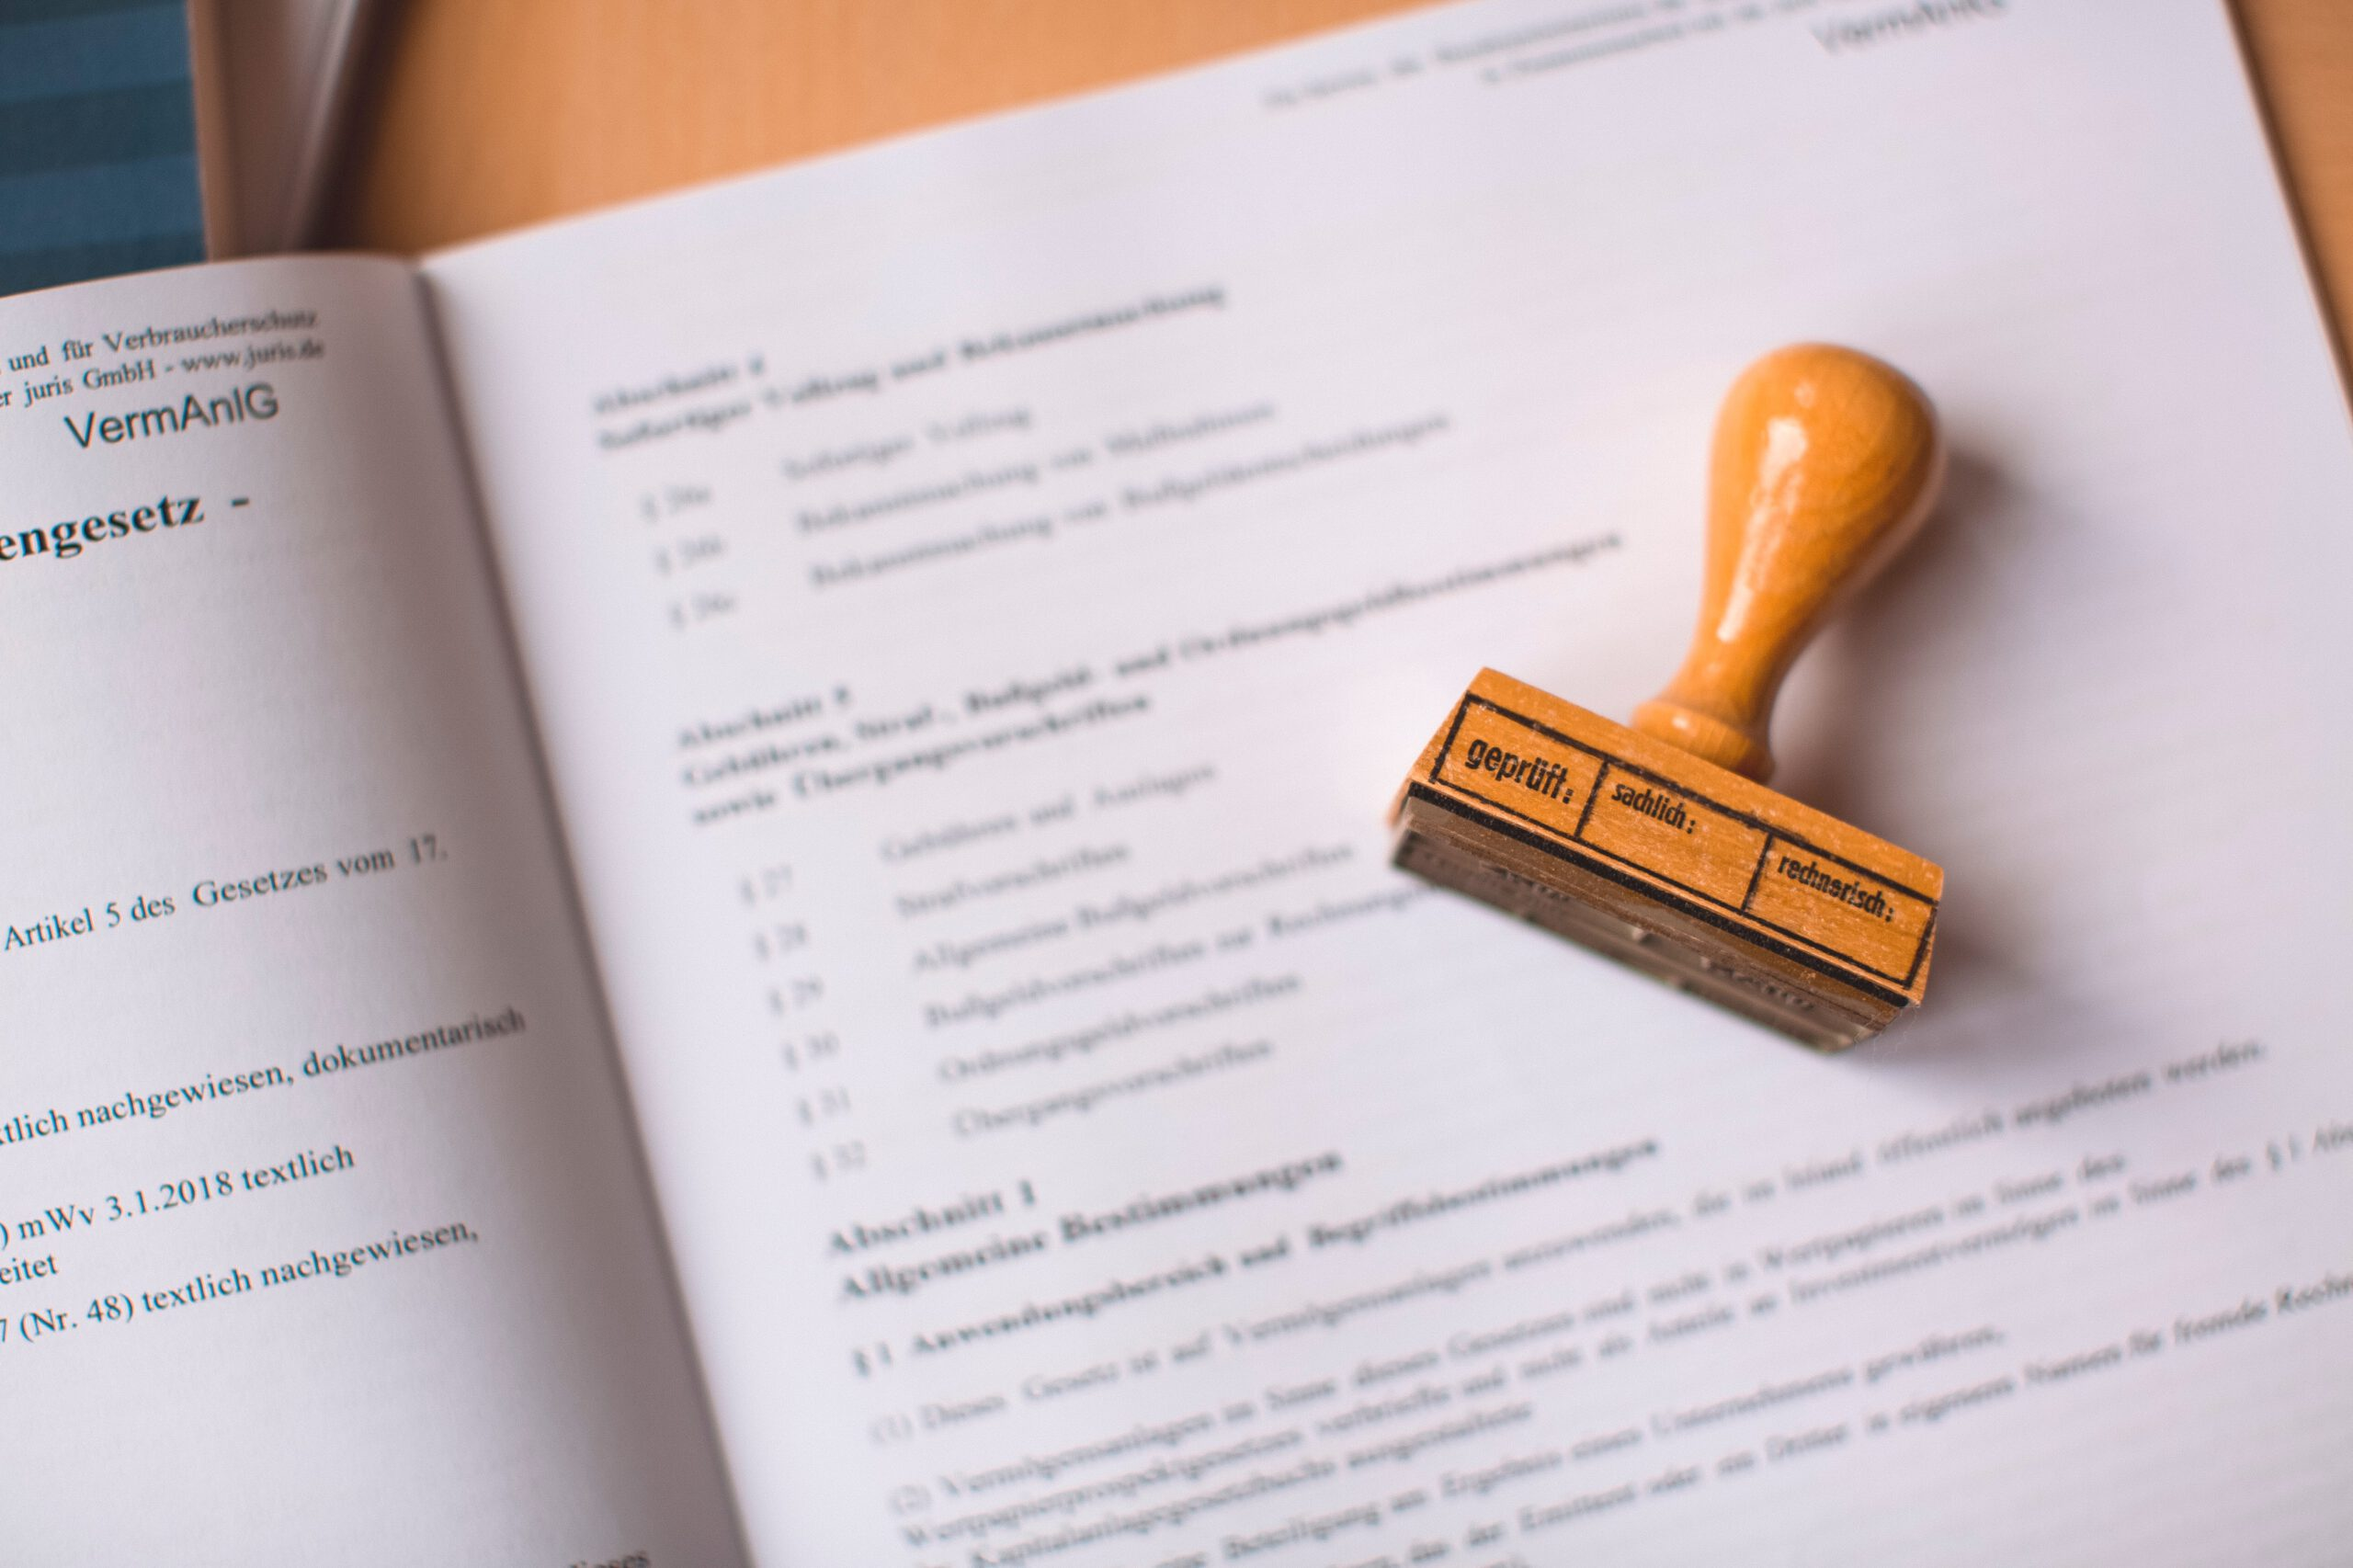 Recognition process of university degrees and qualifications